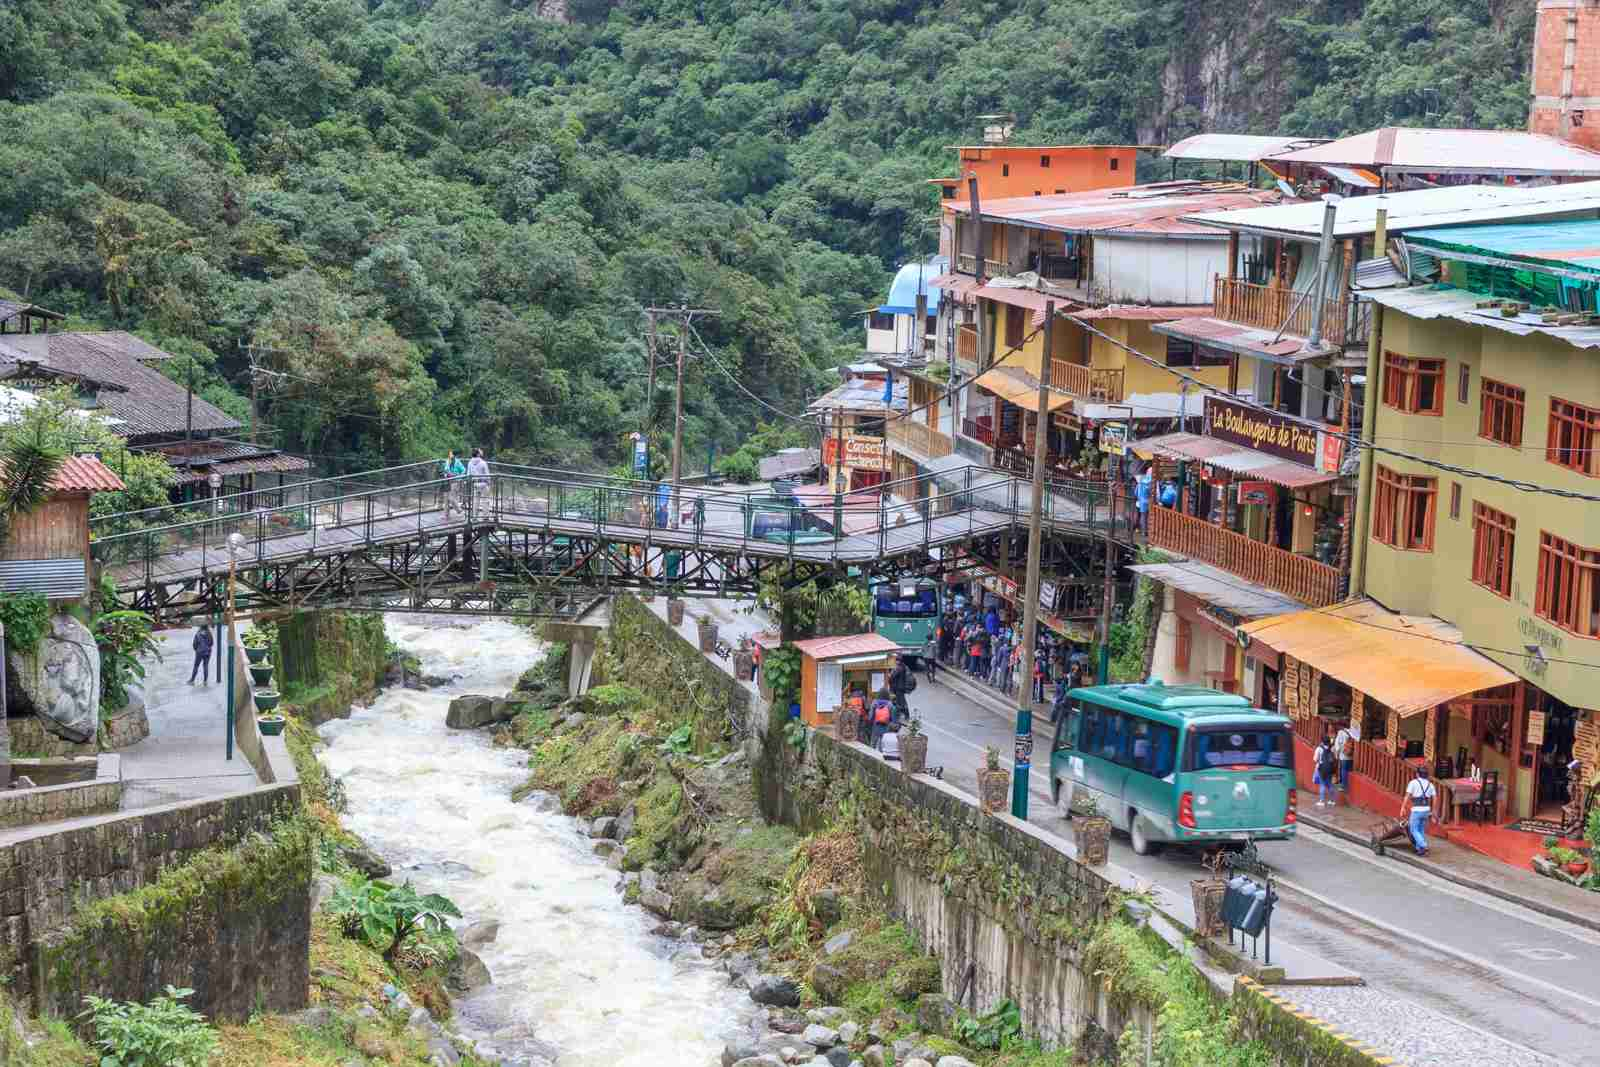 Aguas Calientes city near Machu Picchu. (Photo by ElOjoTorpe/Getty Images)